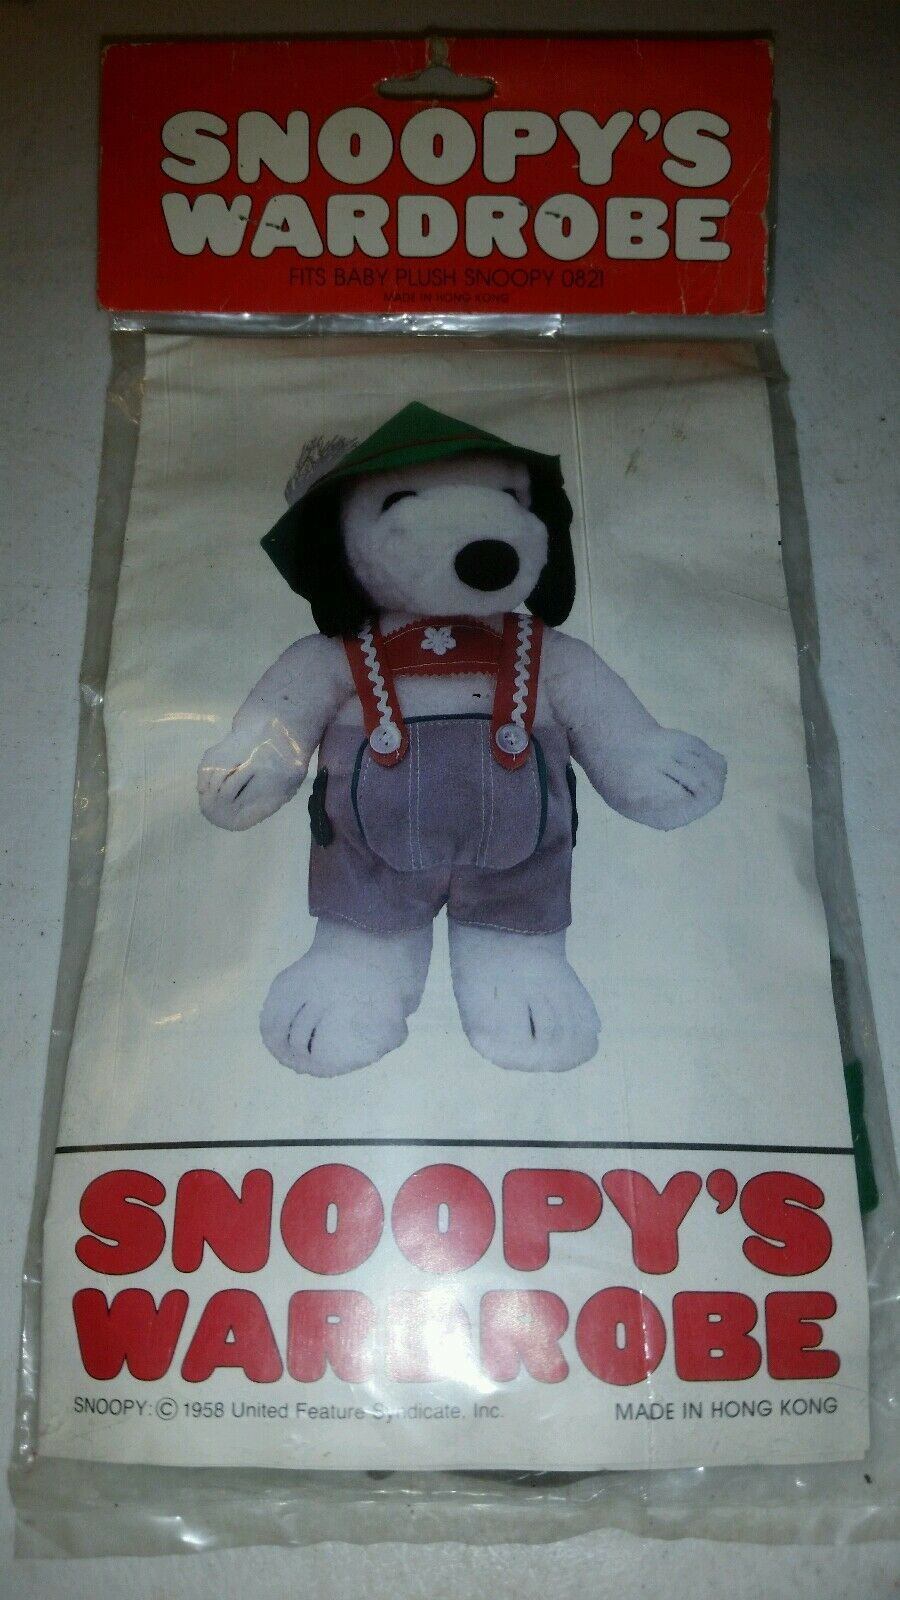 NIB Vintage Vintage Vintage Clothes for Snoopy Outfit for Small Baby Plush Snoopy Doll ca183b